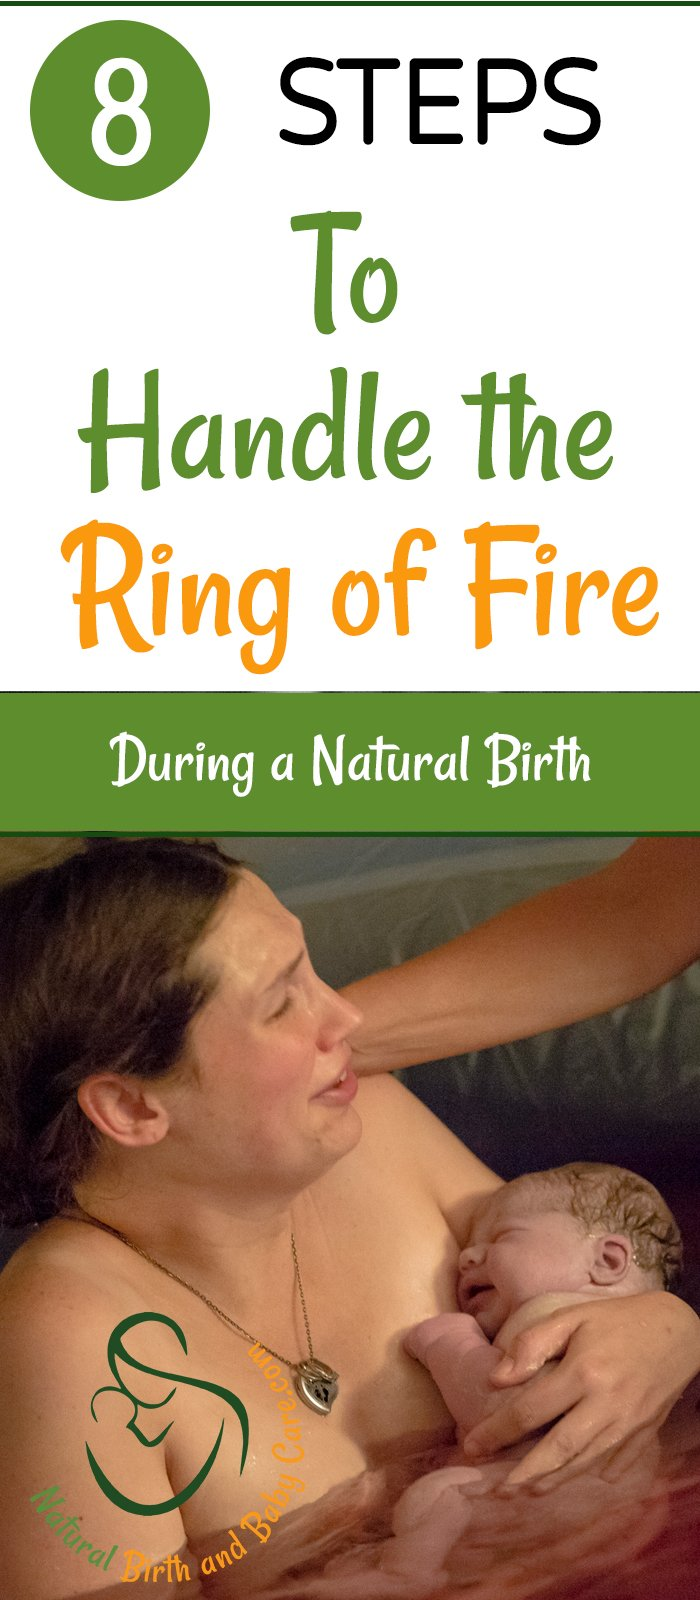 Mom holding baby after handling the ring of fire